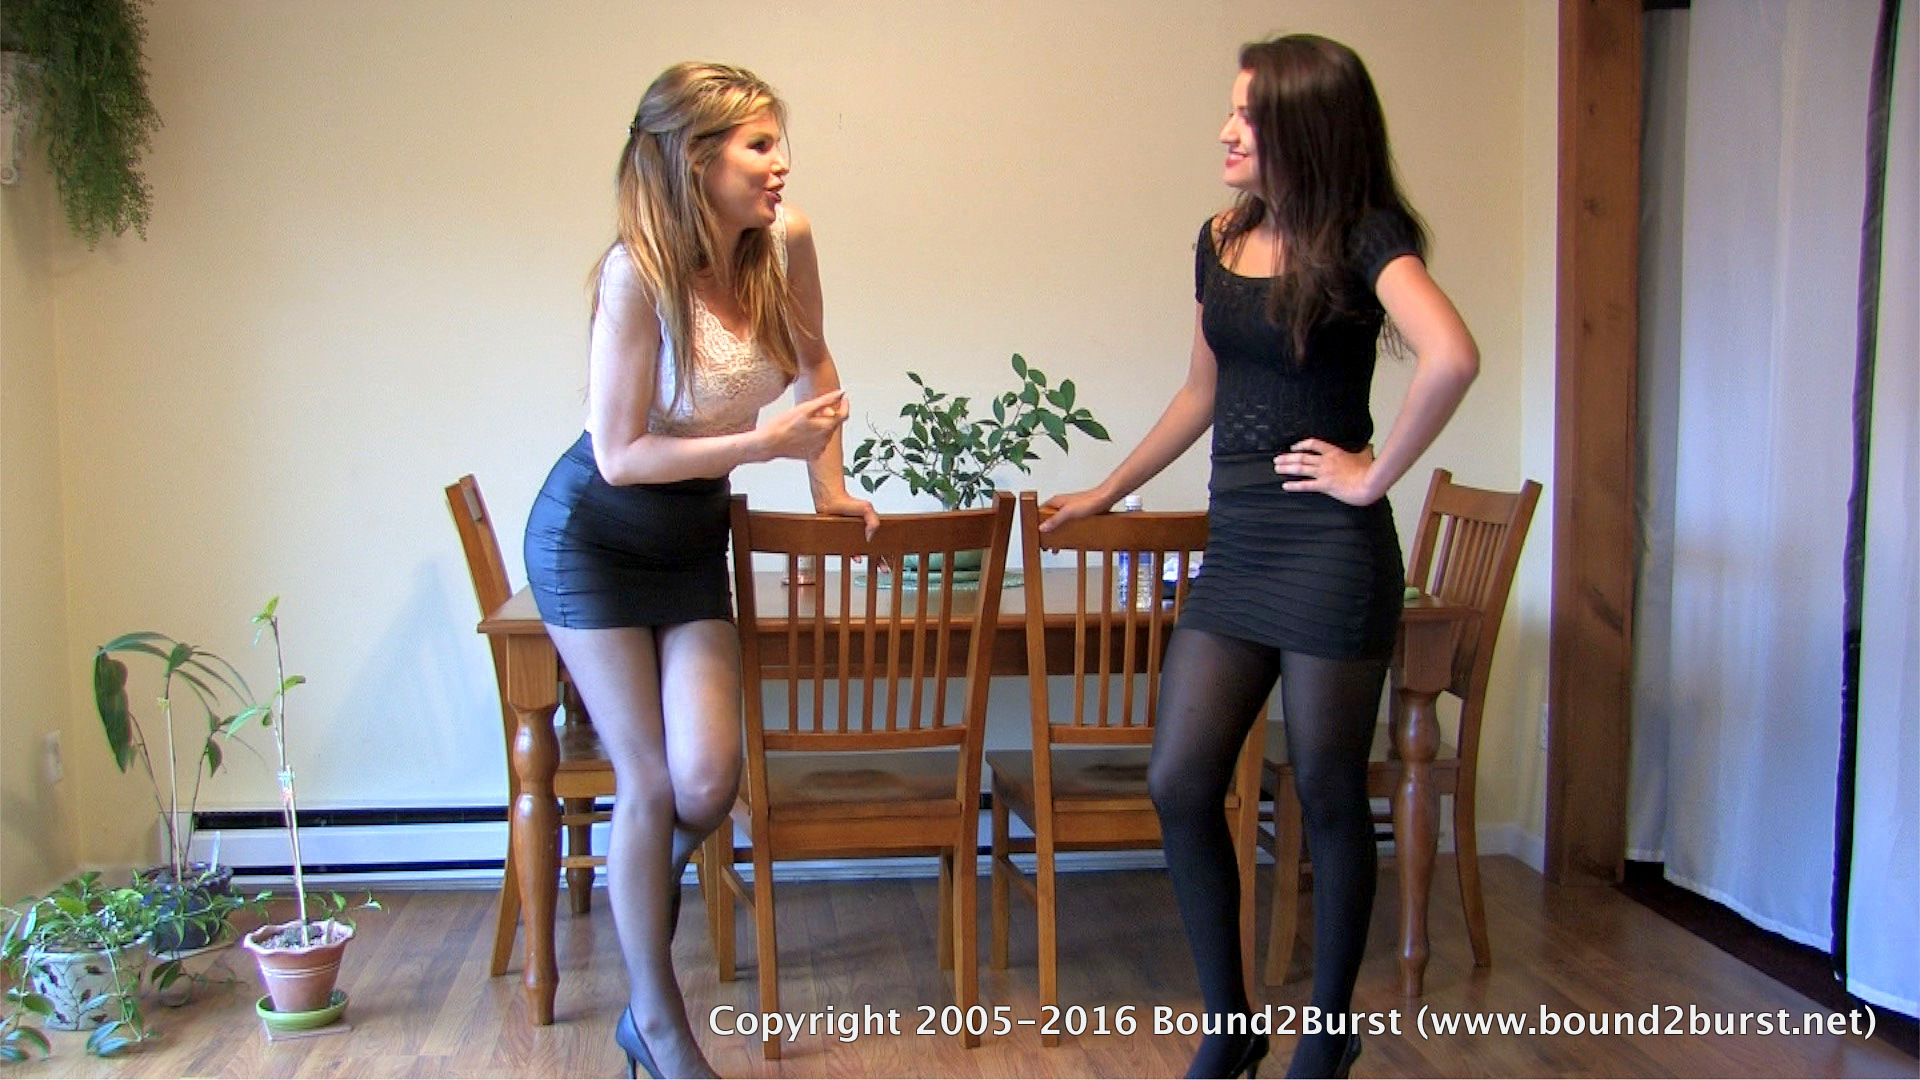 Real female desperation in old empty building pissing-8505